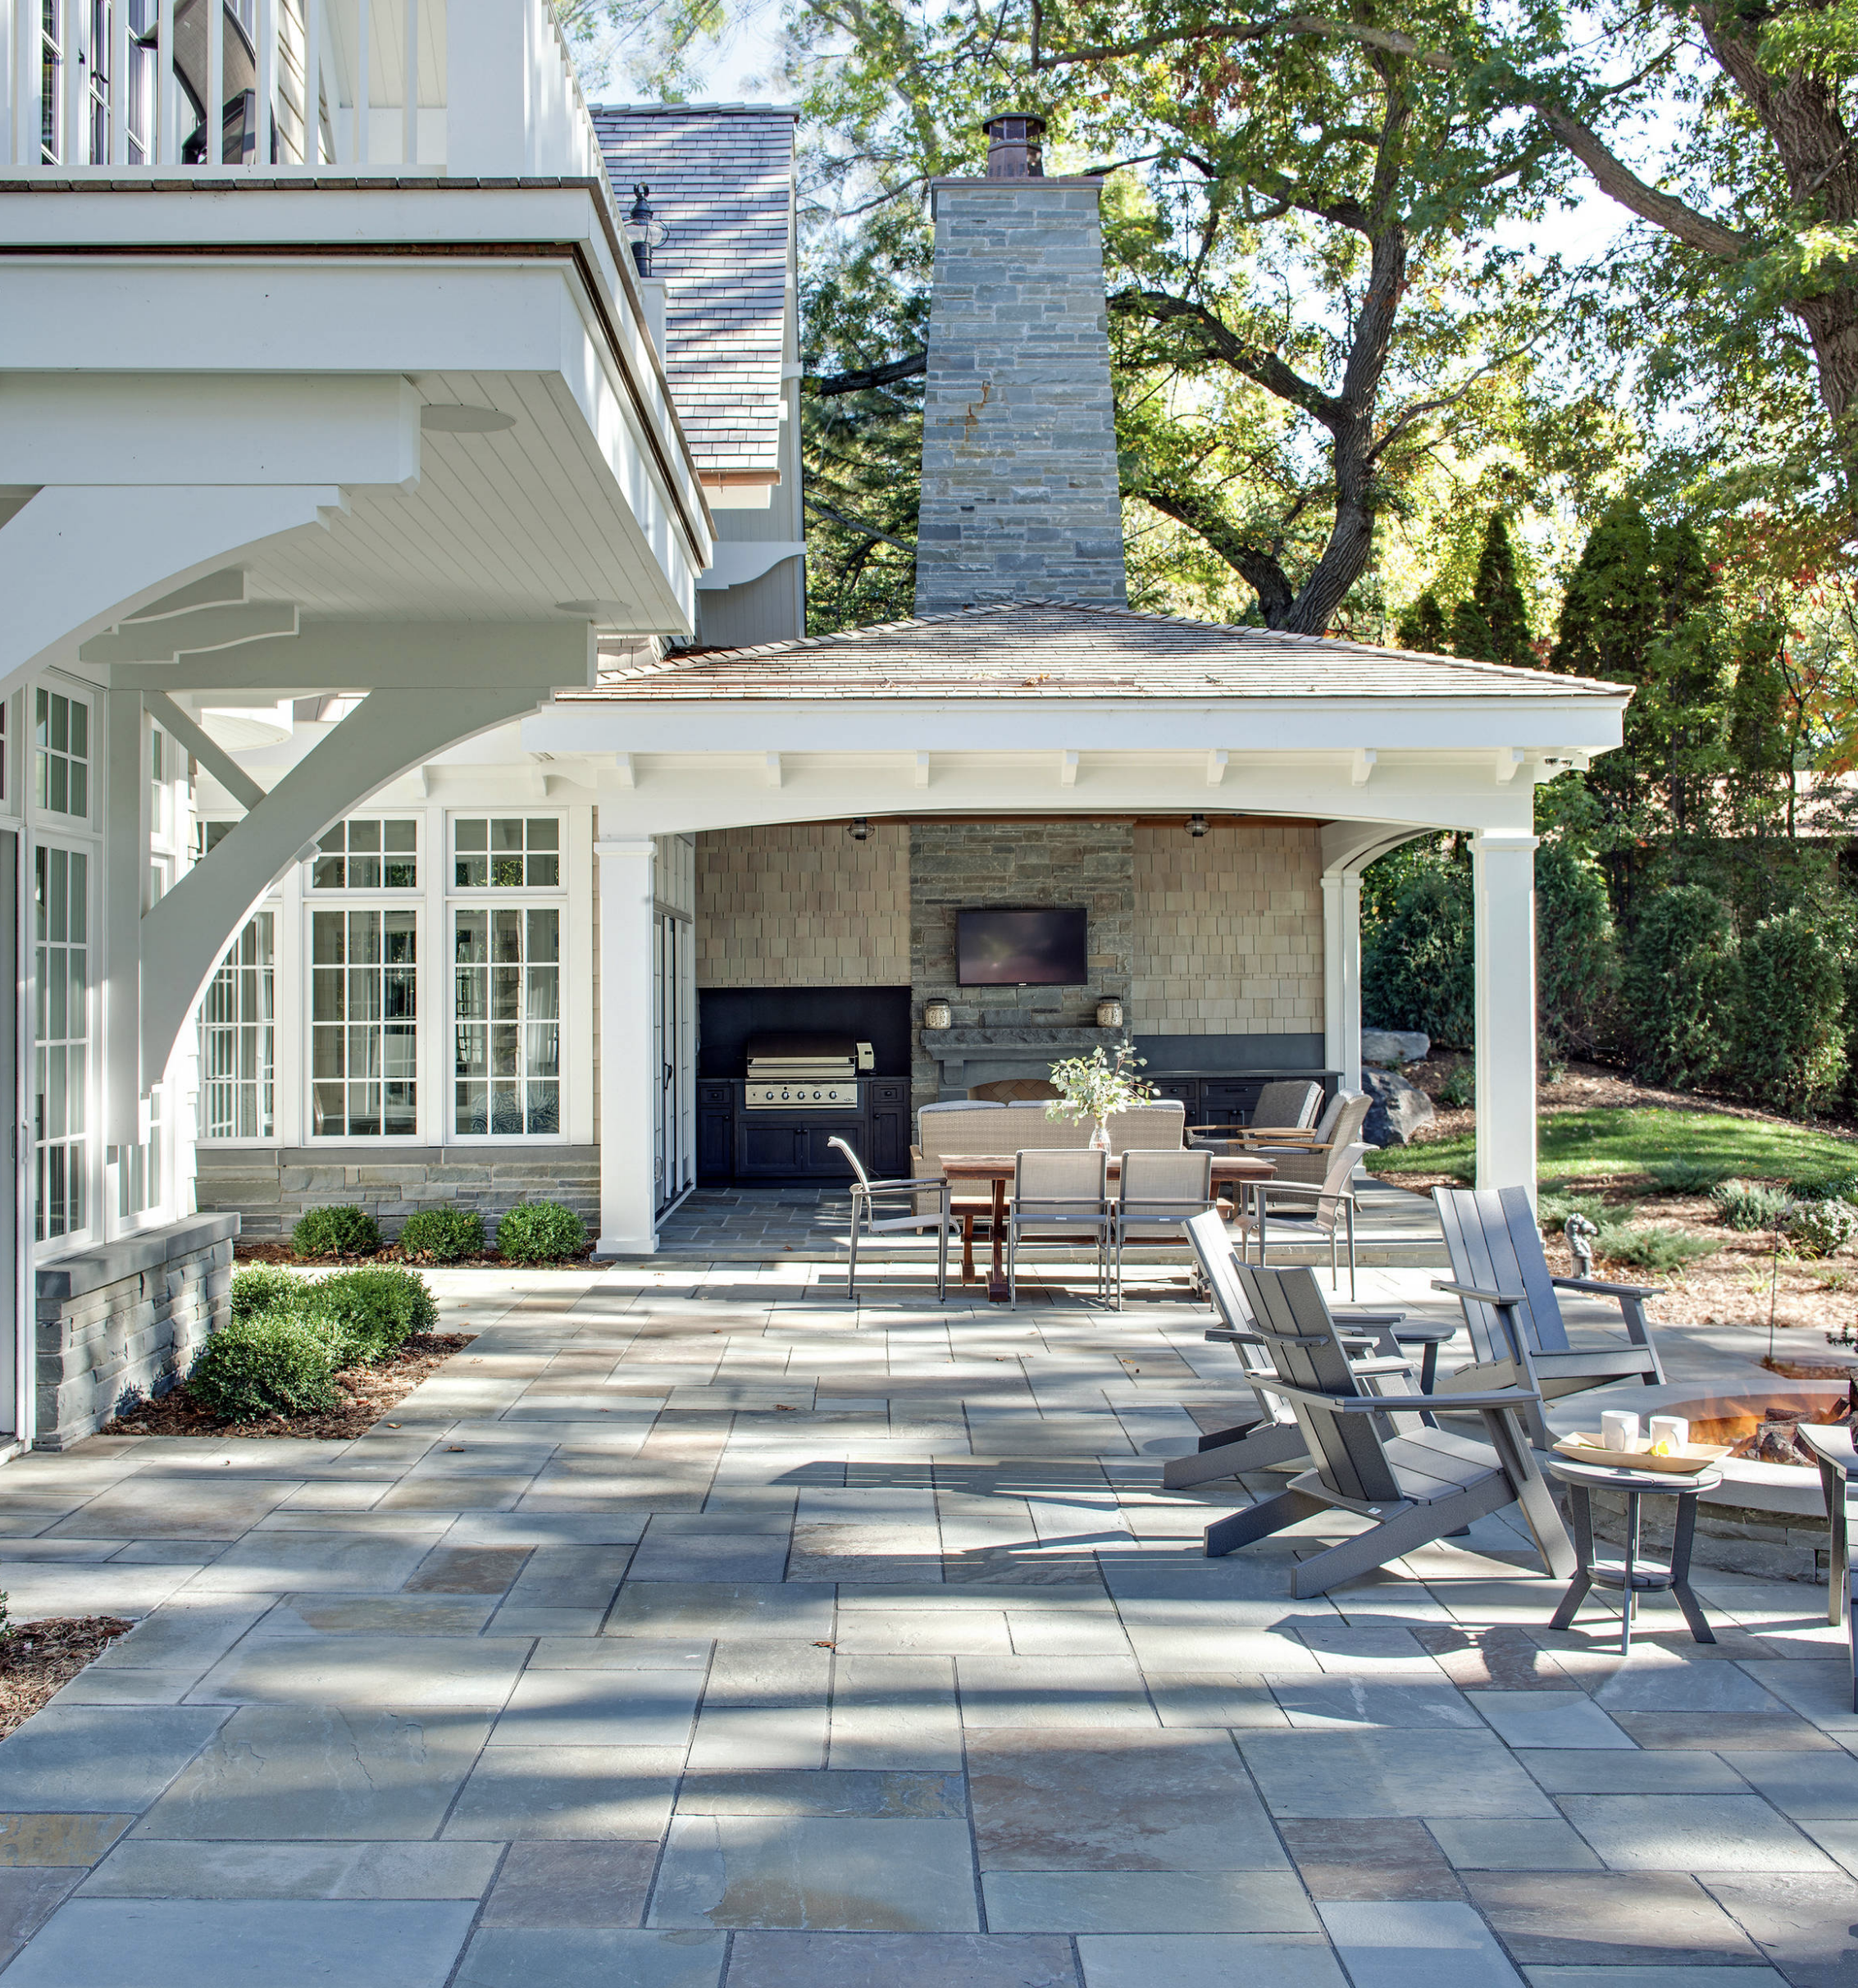 Patio fire place outdoor kitchen